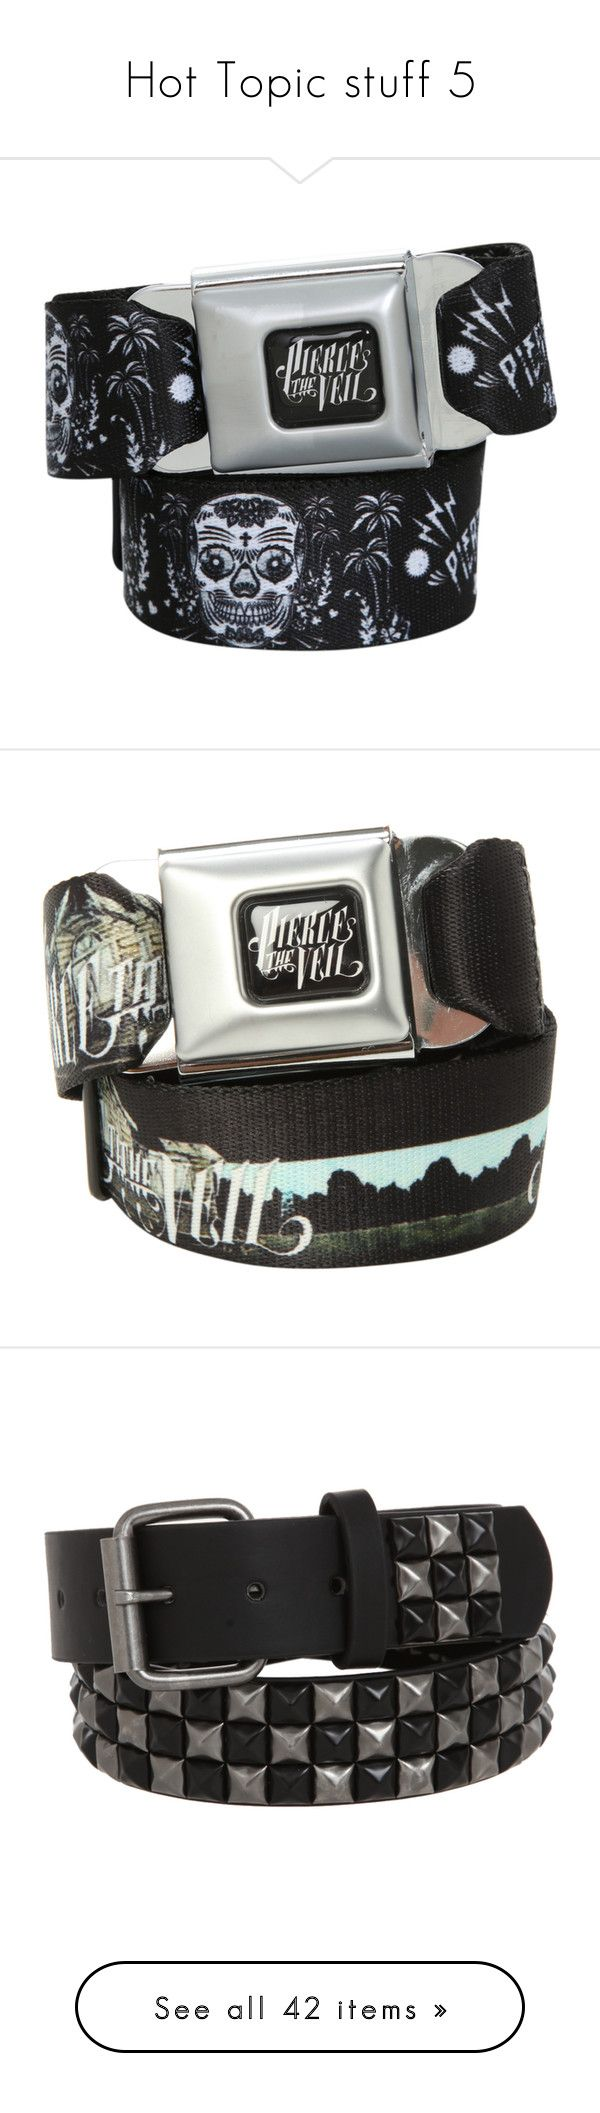 """""""Hot Topic stuff 5"""" by thelyricsmatter ❤ liked on Polyvore featuring belts, accessories, pierce the veil, jewelry, band merch, cinto, buckle belt, hot topic, black and silver belt and pyramid stud belt"""